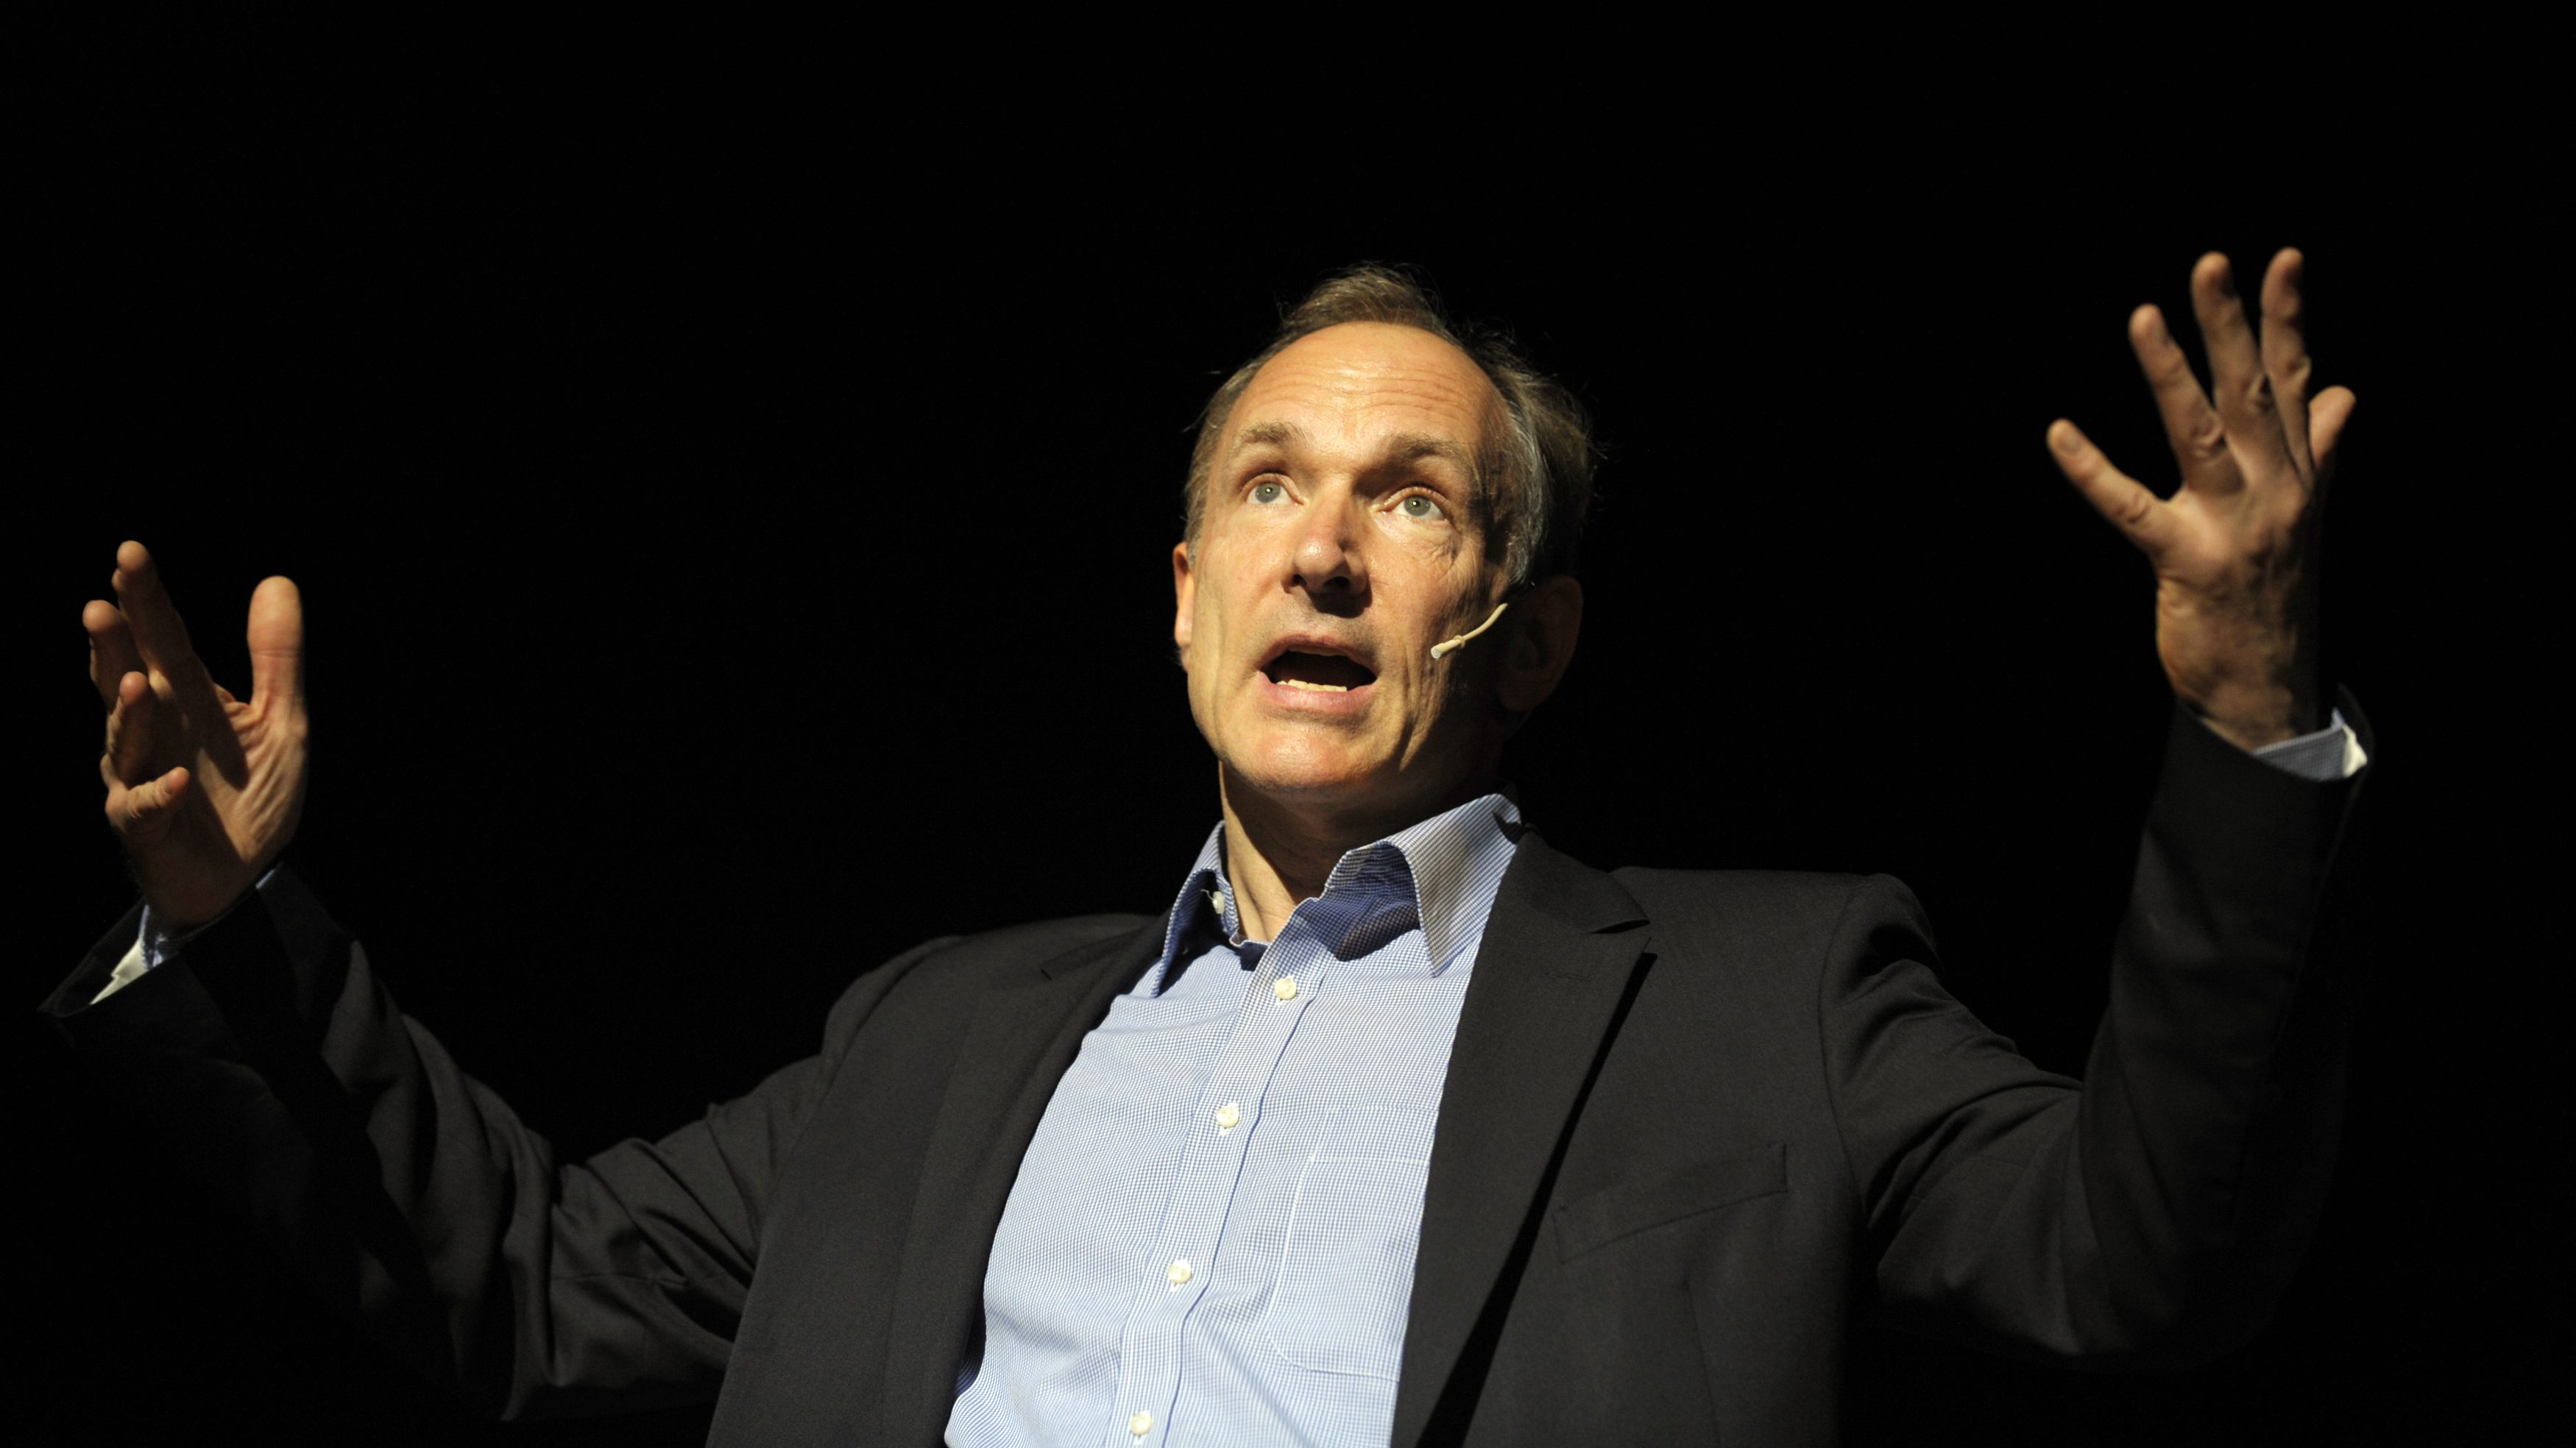 World Wide Web founder Tim Berners-Lee delivers a speech at the Bilbao Web Summit in the Palacio Euskalduna May 17, 2011. Berners-Lee was a keynote speaker at the two day event which includes a meeting of the W3C Advisory Committee.